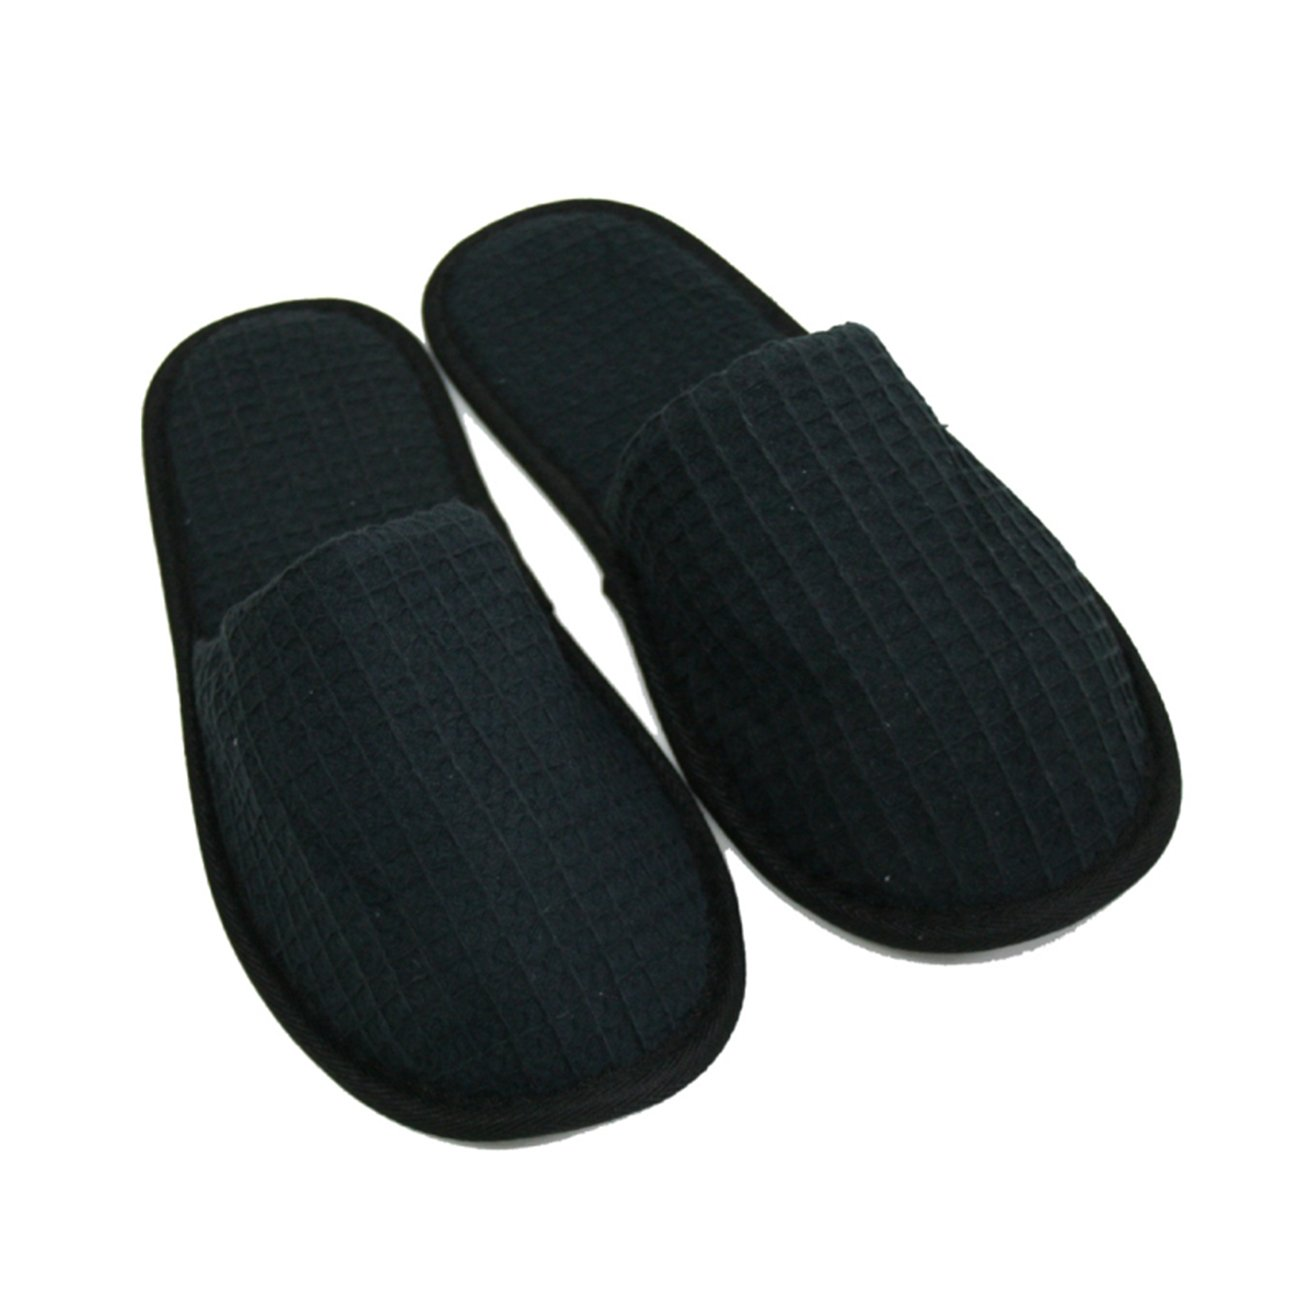 Waffle Closed Toe Adult Slippers Spa Hotel Slippers for Women and Men White (Black)